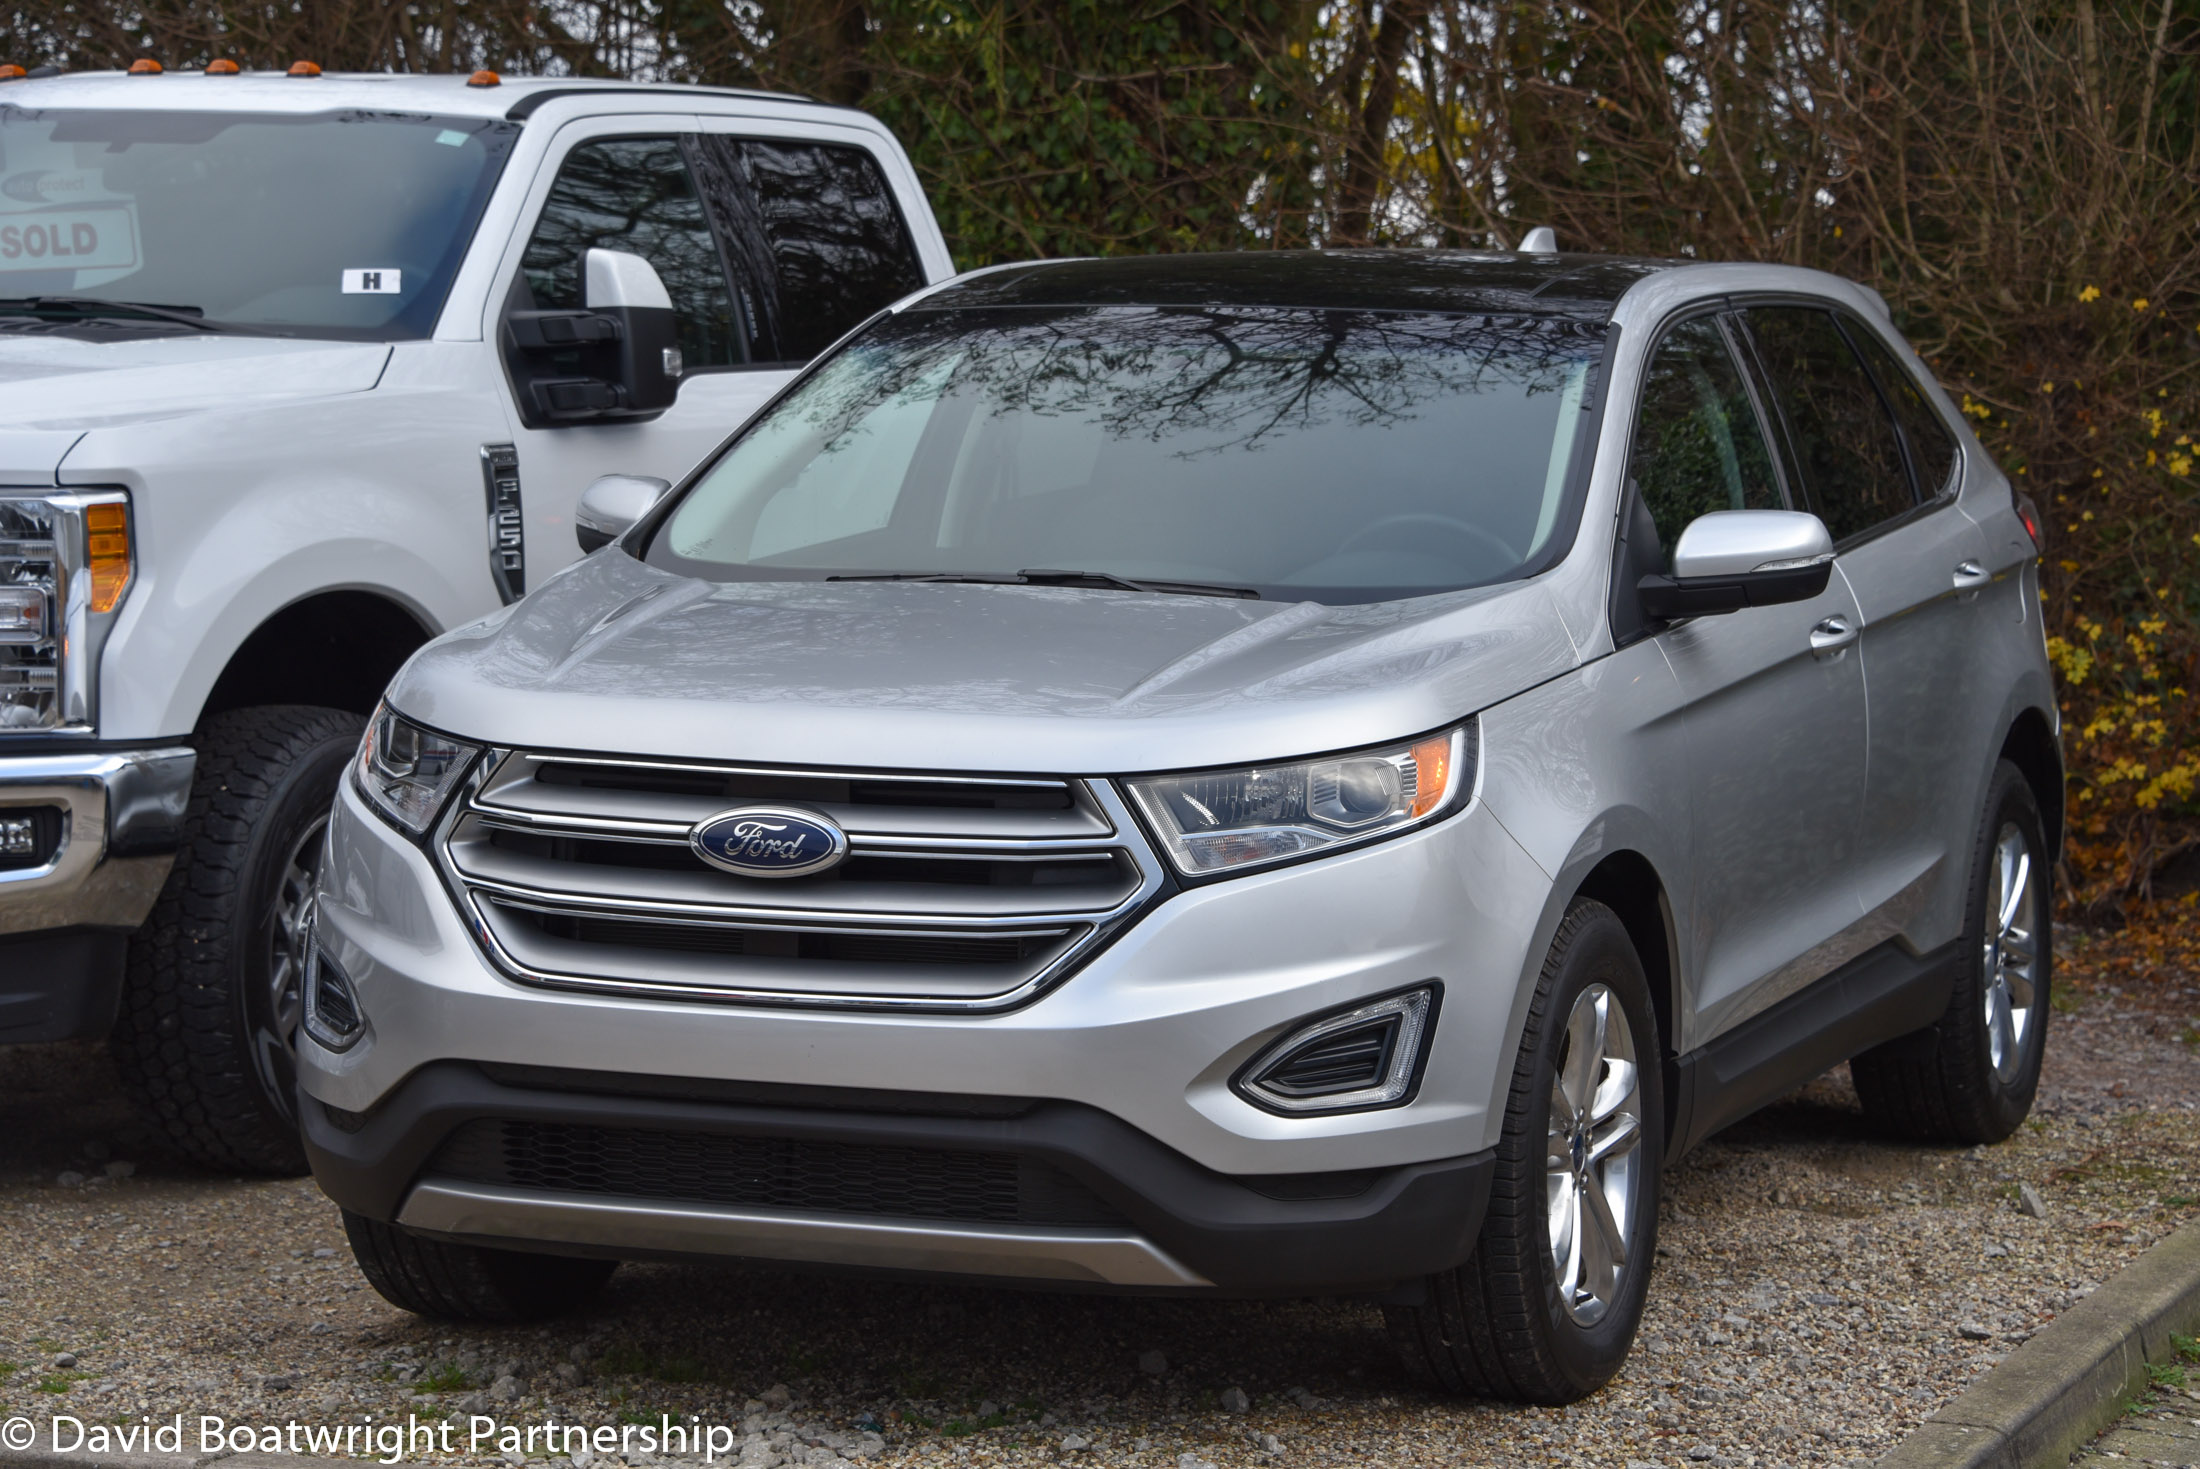 2015 Ford Edge Sel 3 5 Litre V6 Petrol  U2013 David Boatwright Partnership